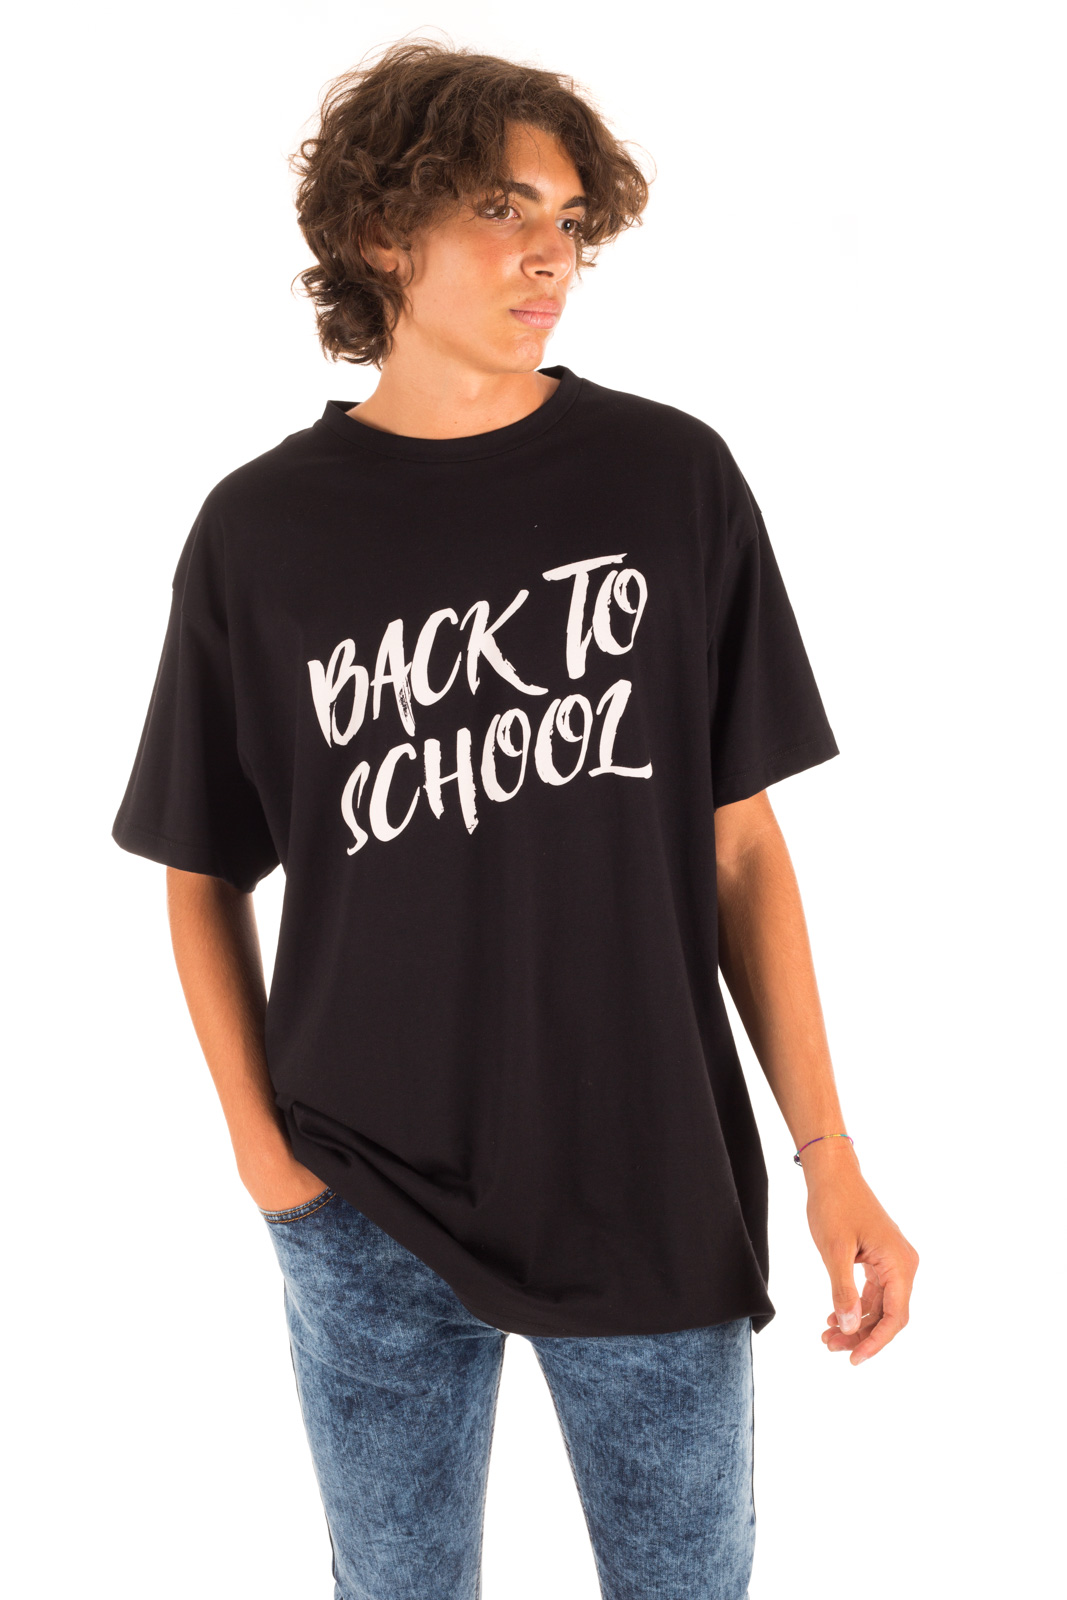 Paura - Benedetta T shirt School Black